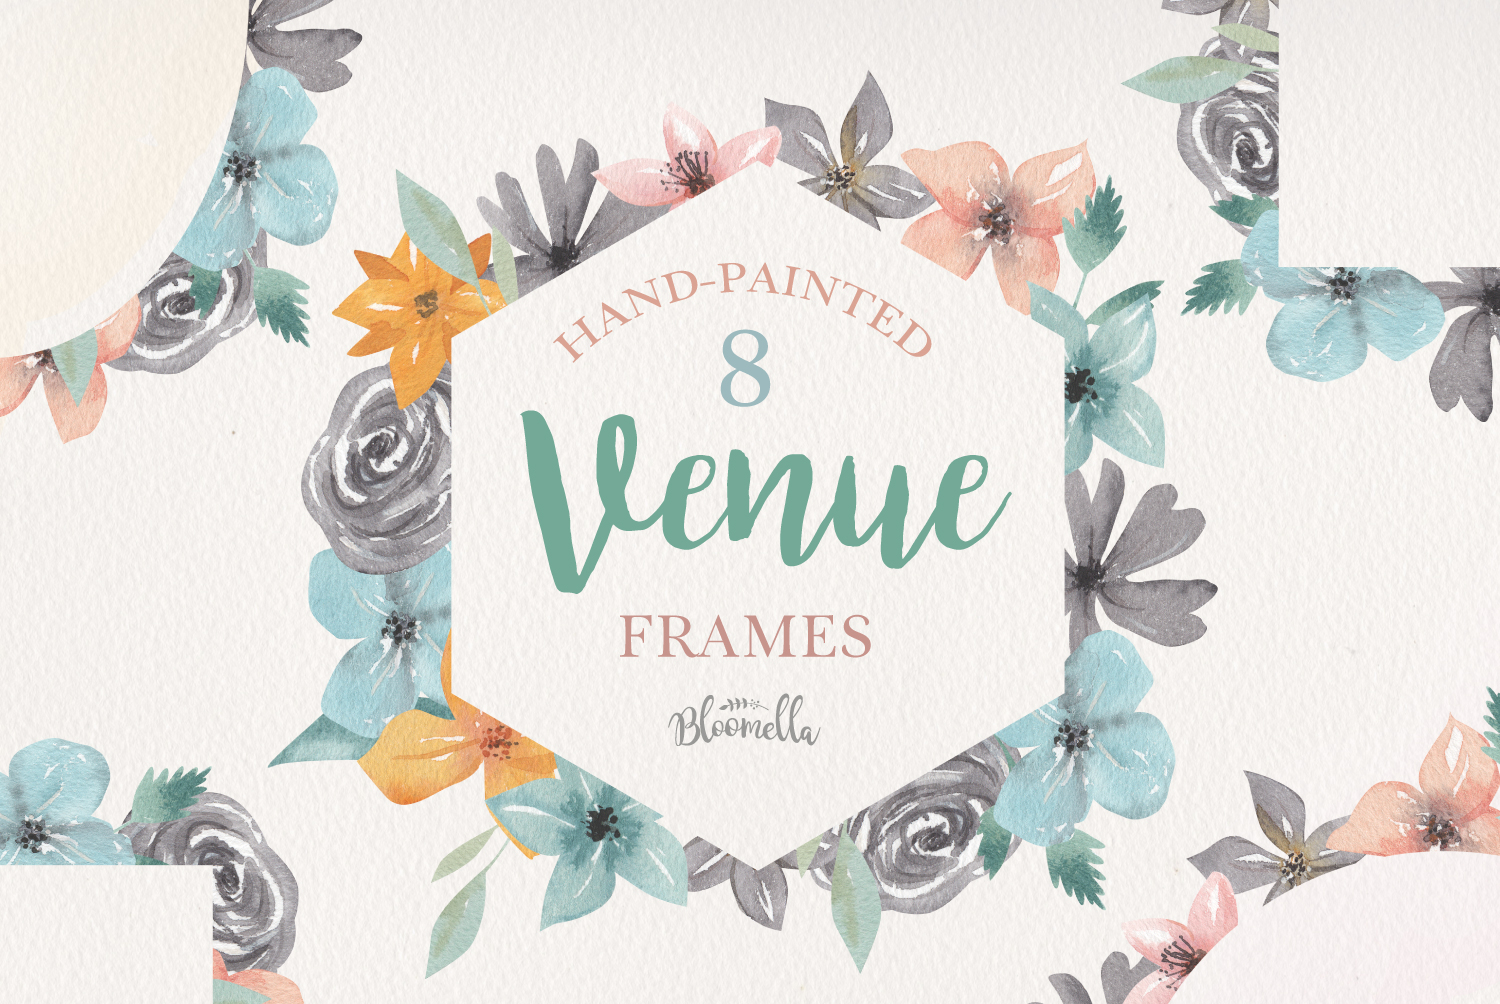 Hand-Painted Venue Frames example image 1